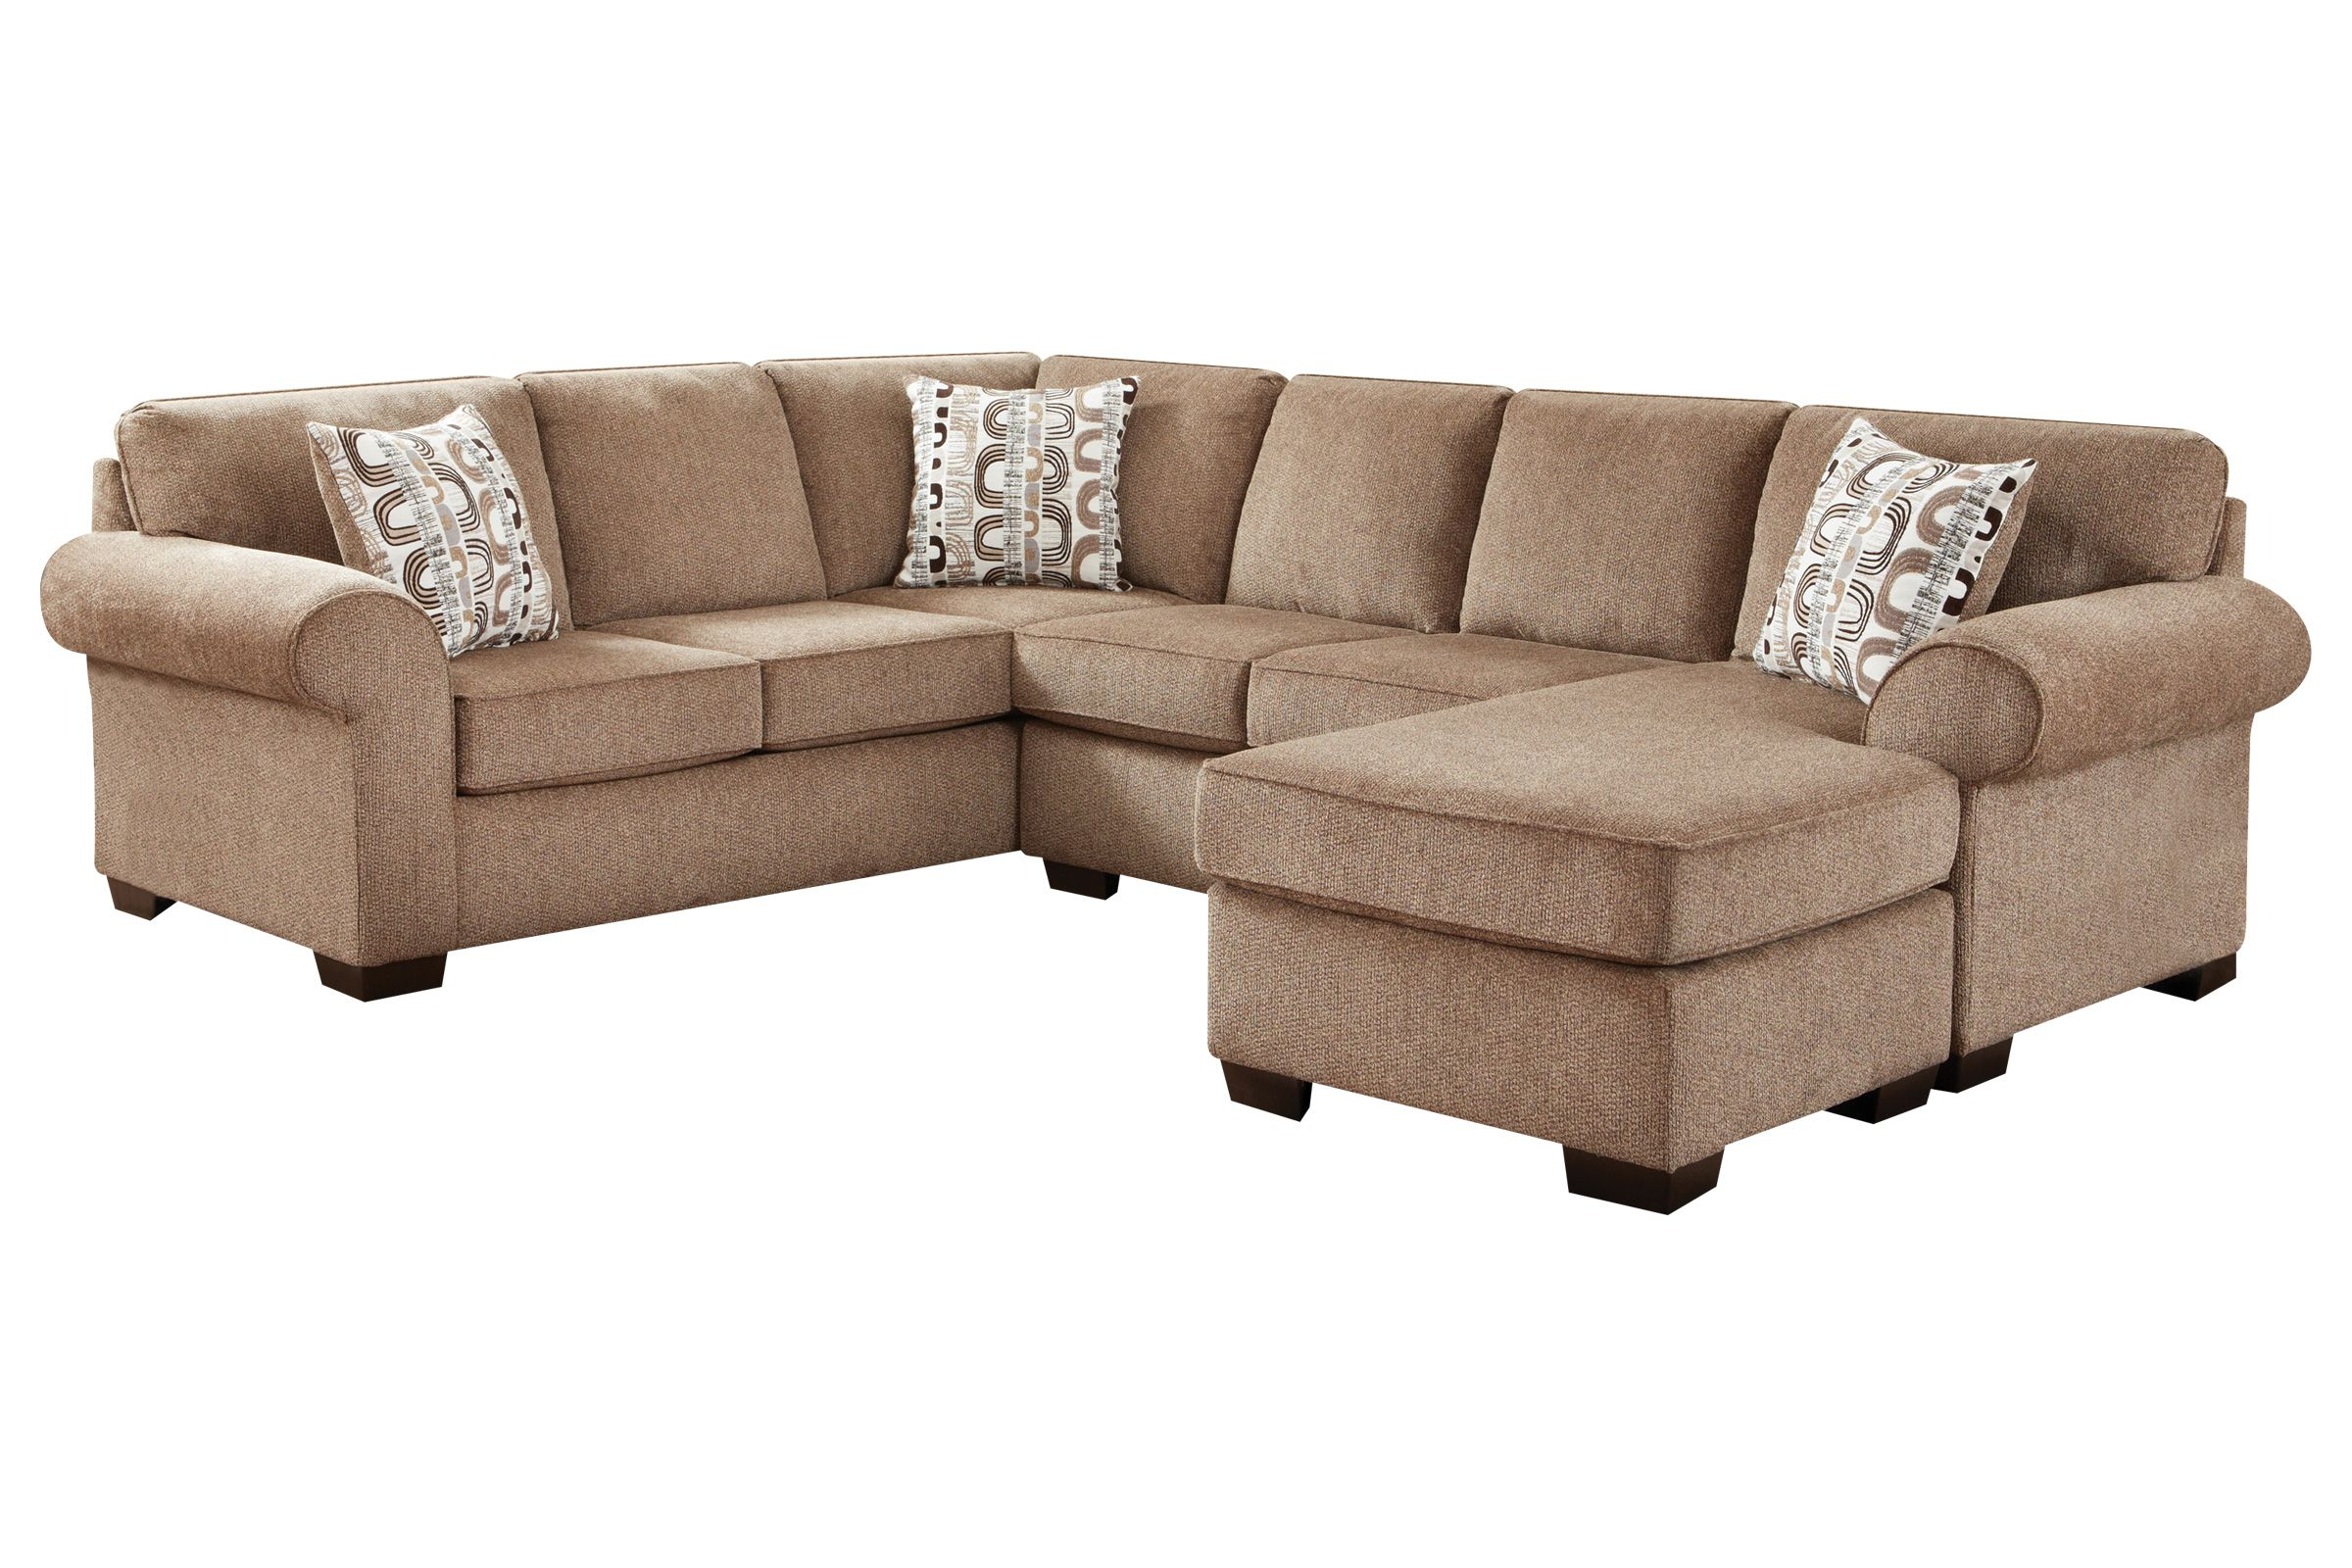 Featured Steal Jesse Sectional Now $1129.99 $903.99 + We Pay Your Tax  sc 1 st  Gardner-White : sectionals on sale - Sectionals, Sofas & Couches